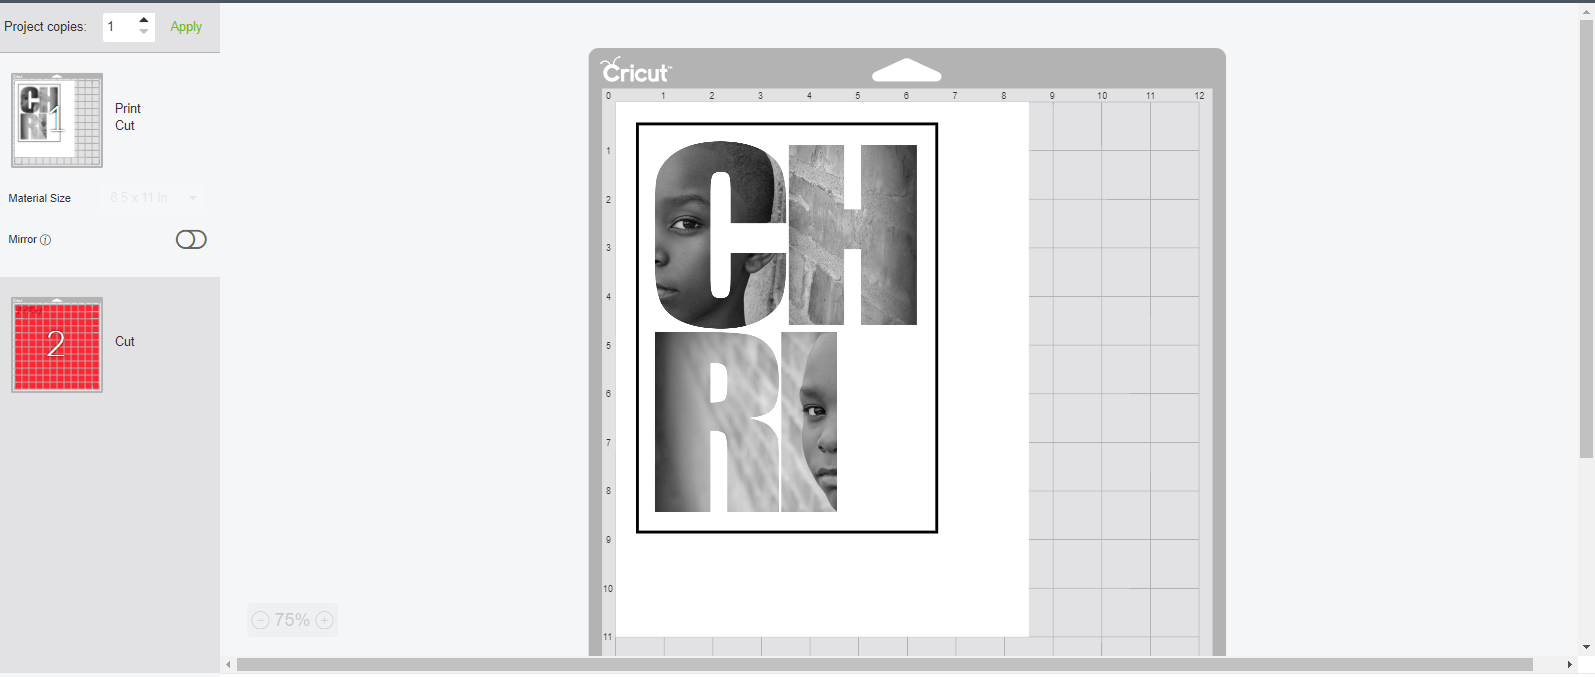 graphic about Cricut Printable Image Too Large called How towards Lower Upon Cricut Then Picture or Habit Fill ⋆ as a result of Red